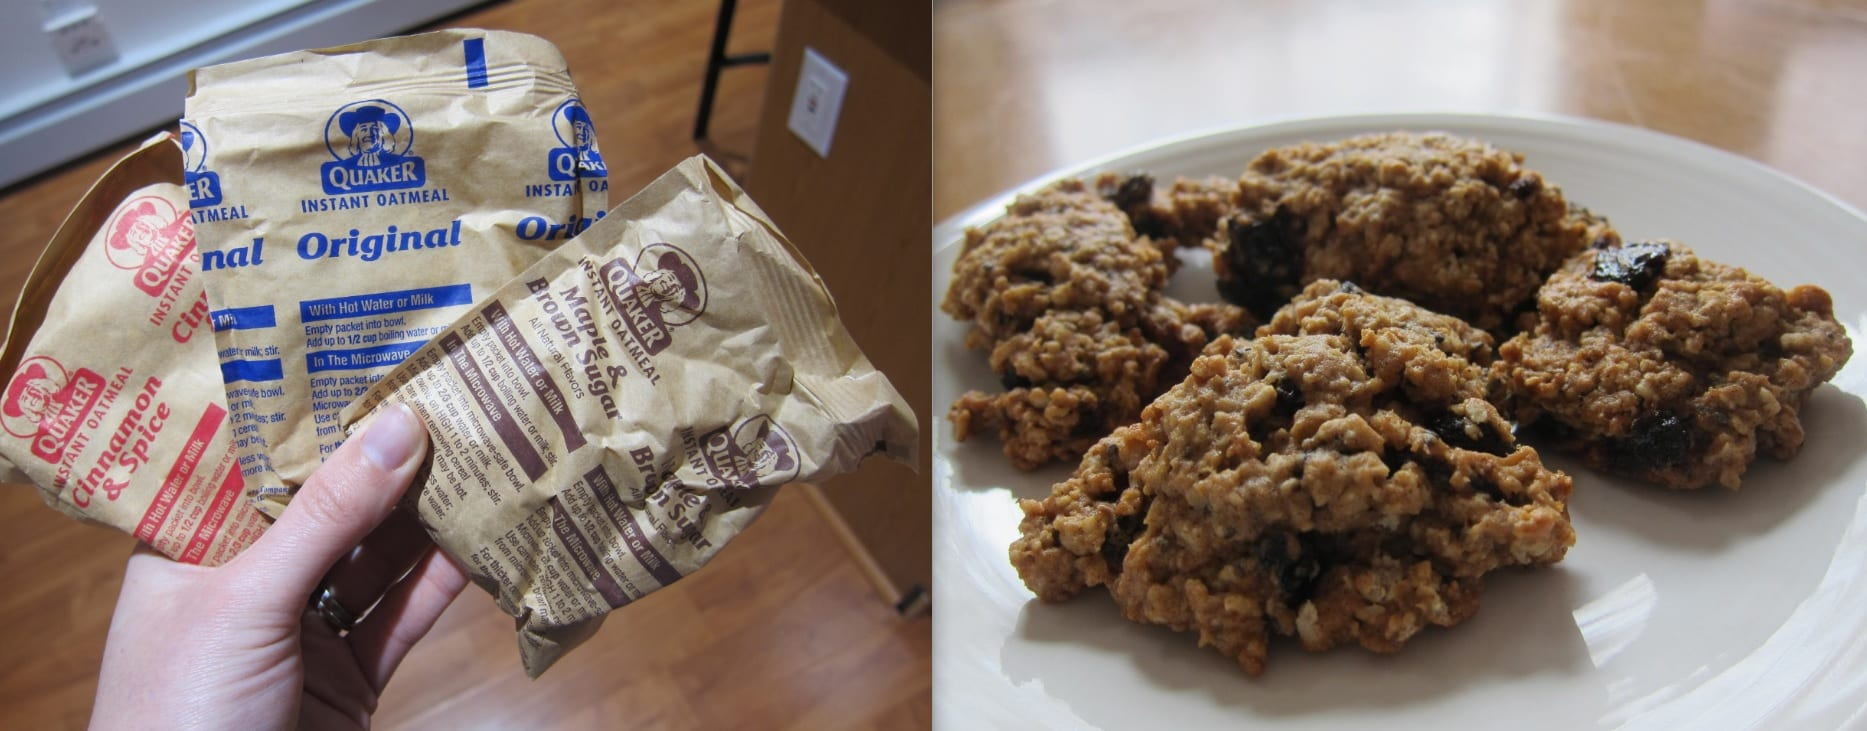 Hearty Oatmeal Cookies Using Instant Oatmeal Packets